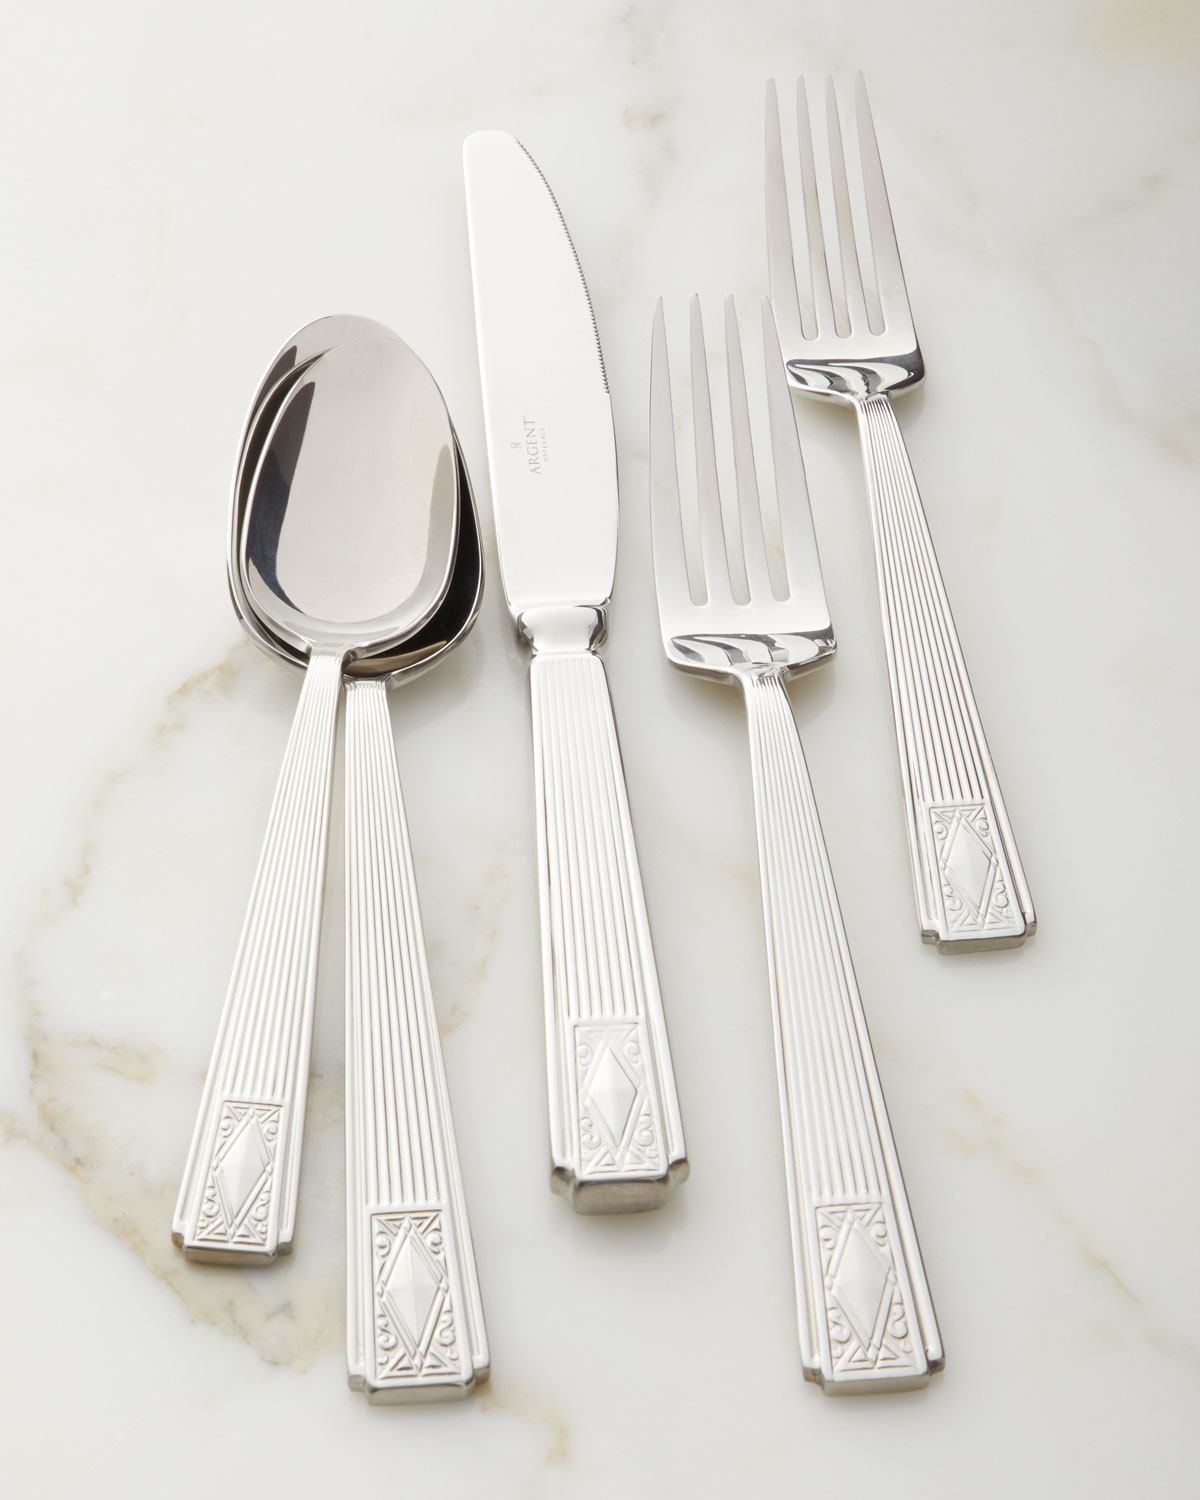 Hampton Forge 20-Piece Cabriole Flatware Set